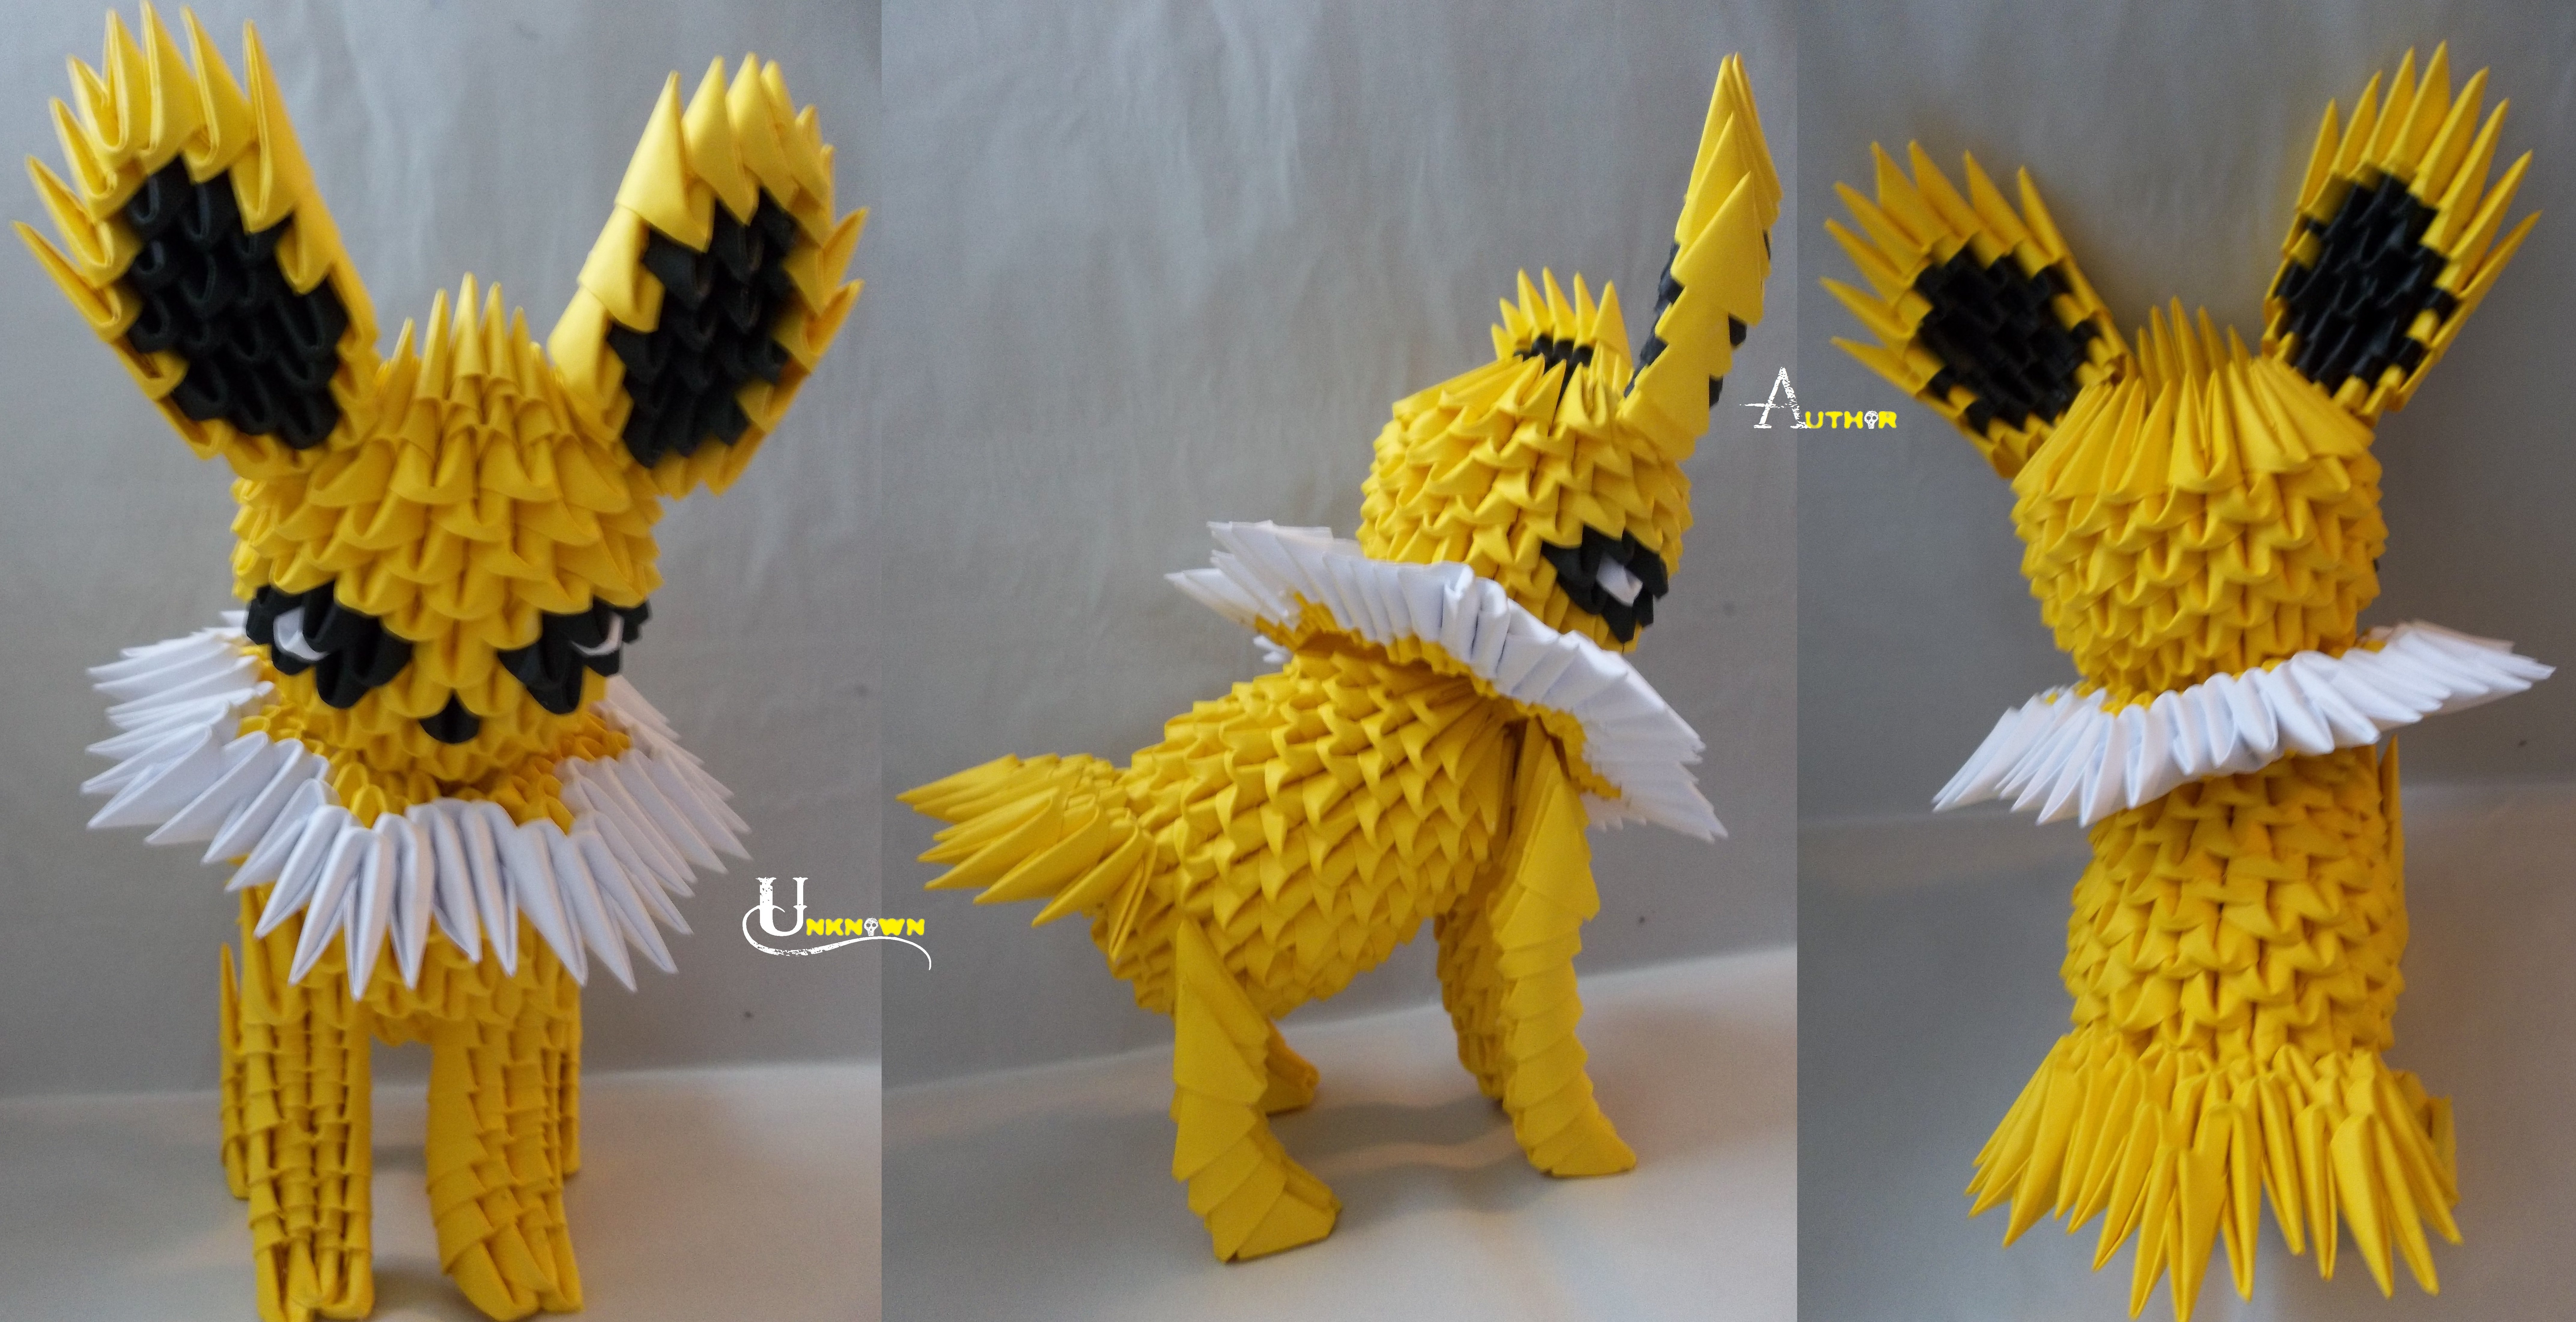 3D Origami - Pikachu | Origami crafts projects, Origami art, 3d ... | 4400x8576